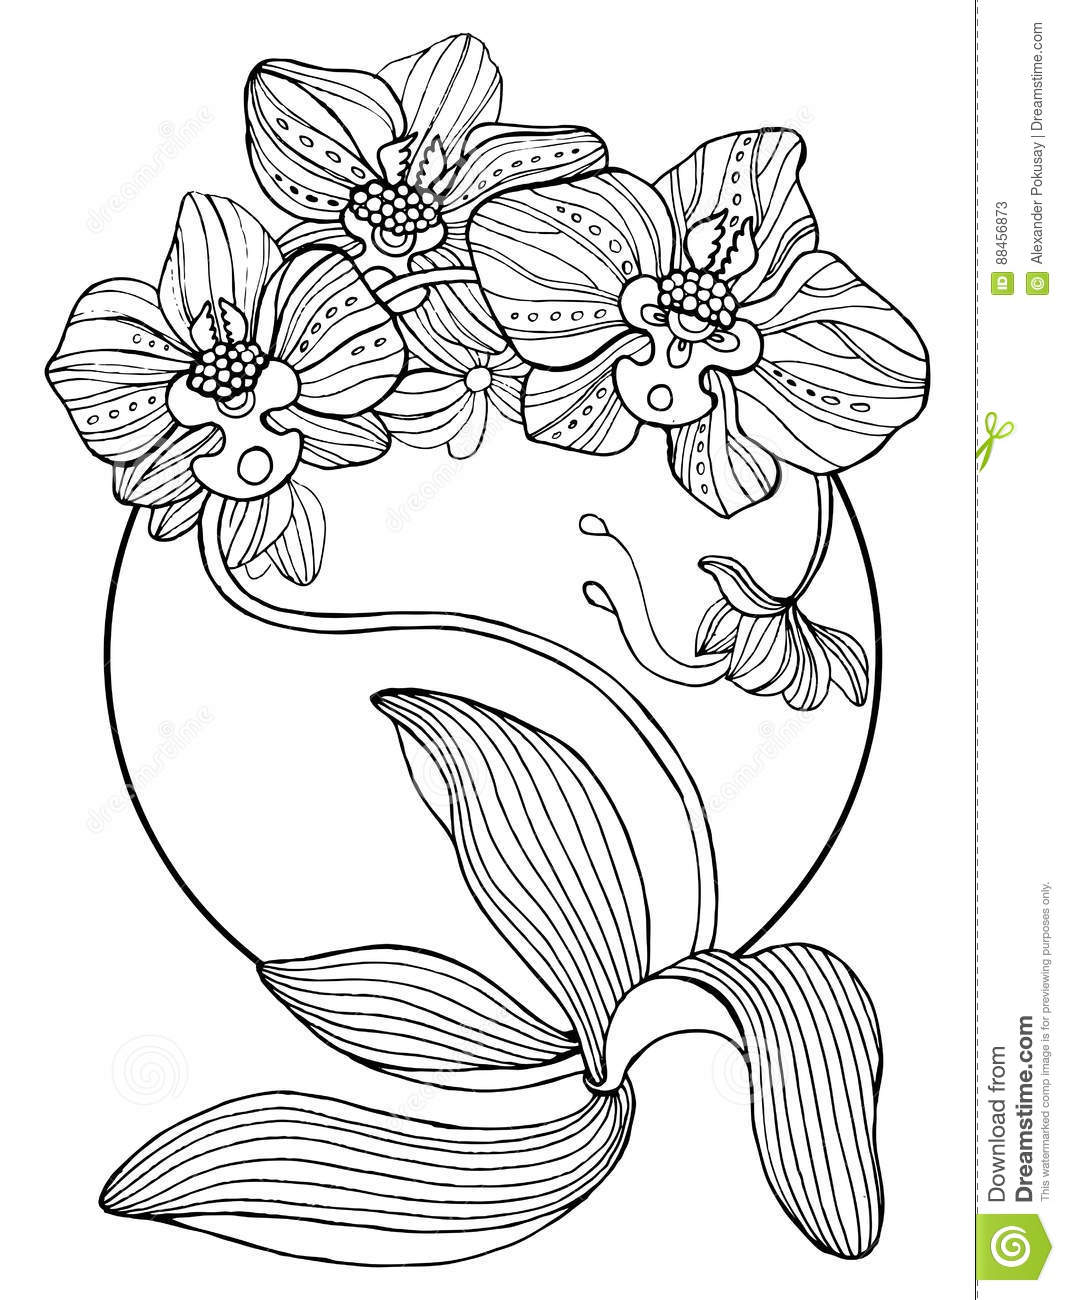 Orchid Flowers Coloring Book Vector Illustration Stock Vector ...